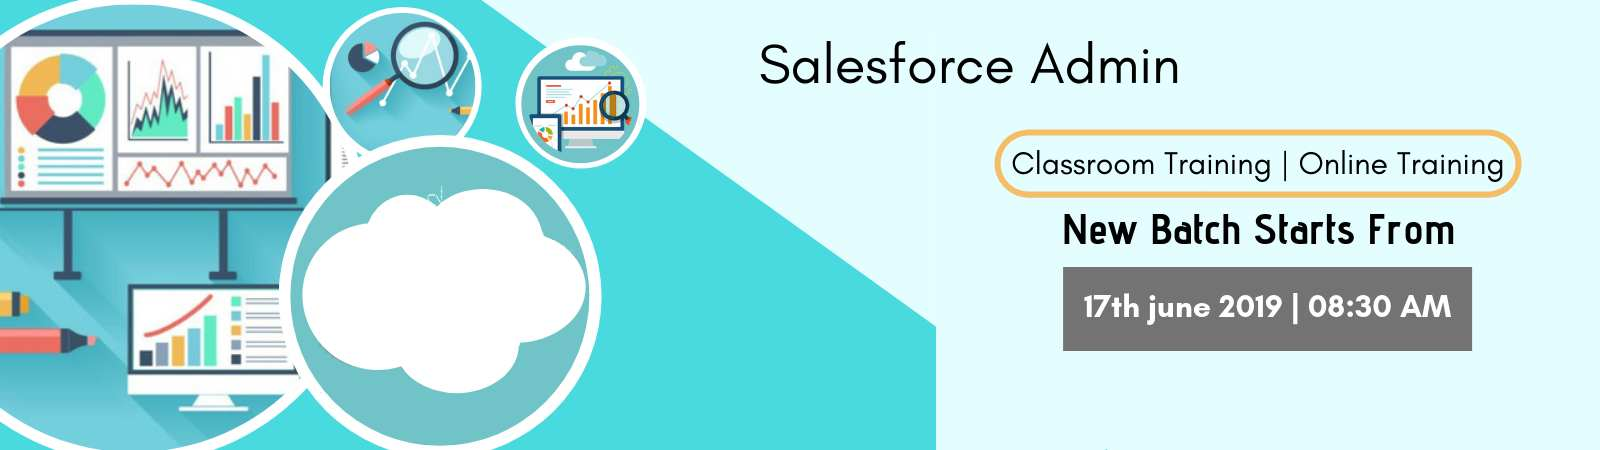 salesforce Admin banner